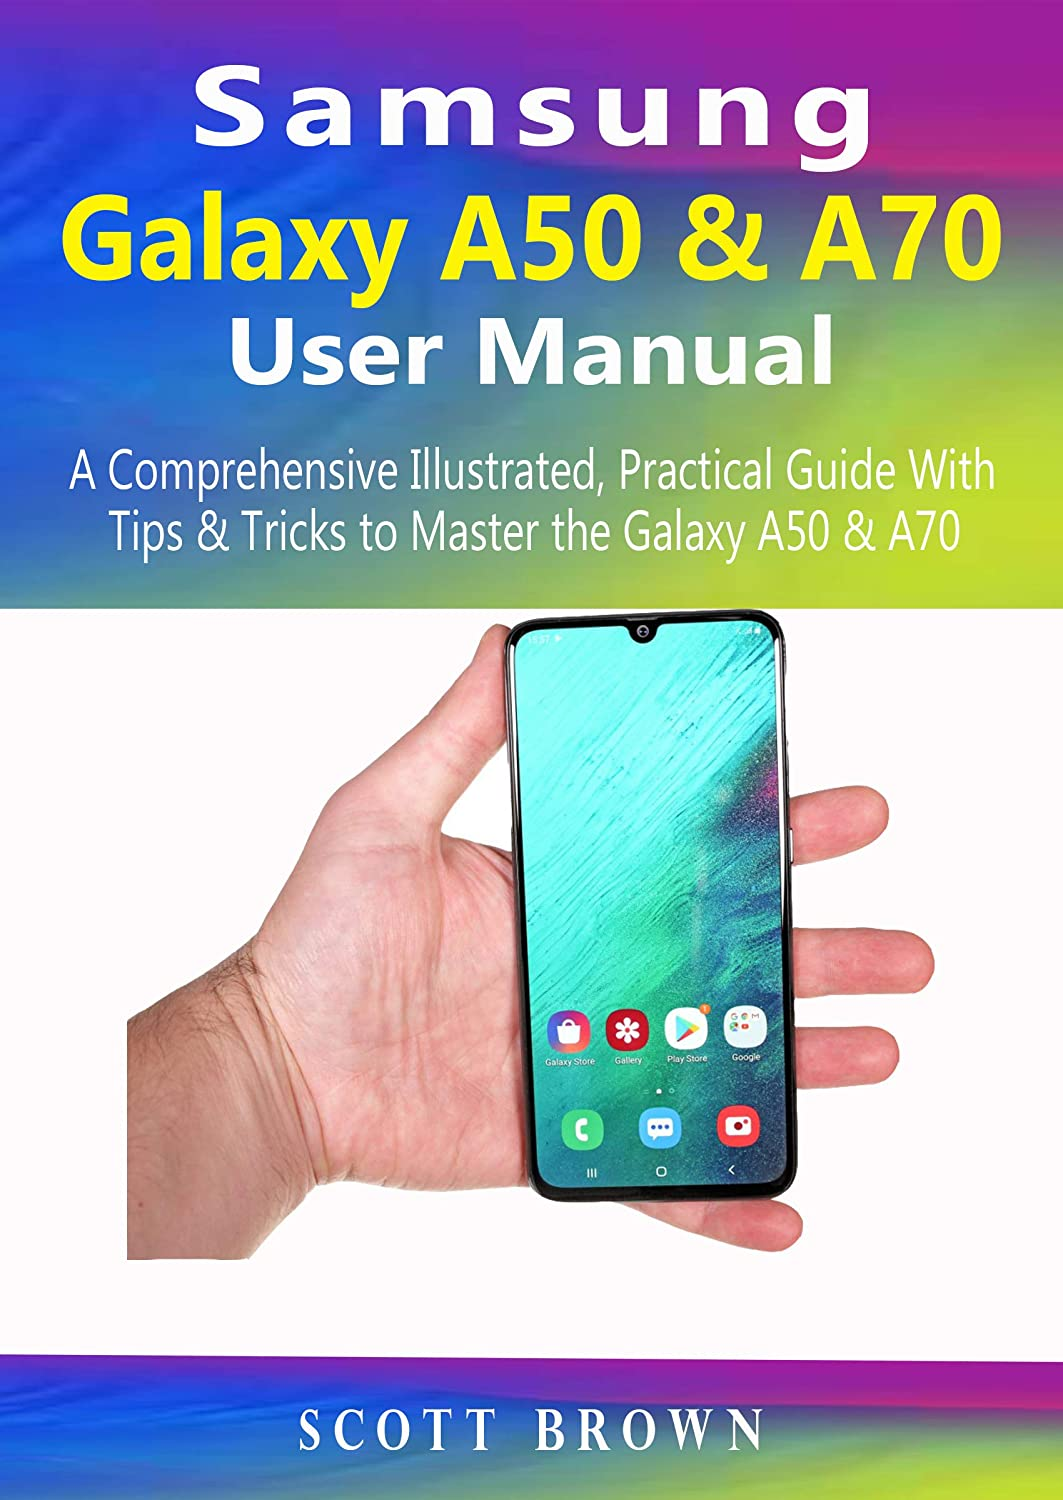 Samsung Galaxy A50 & A70 User Manual: A Comprehensive Illustrated ...